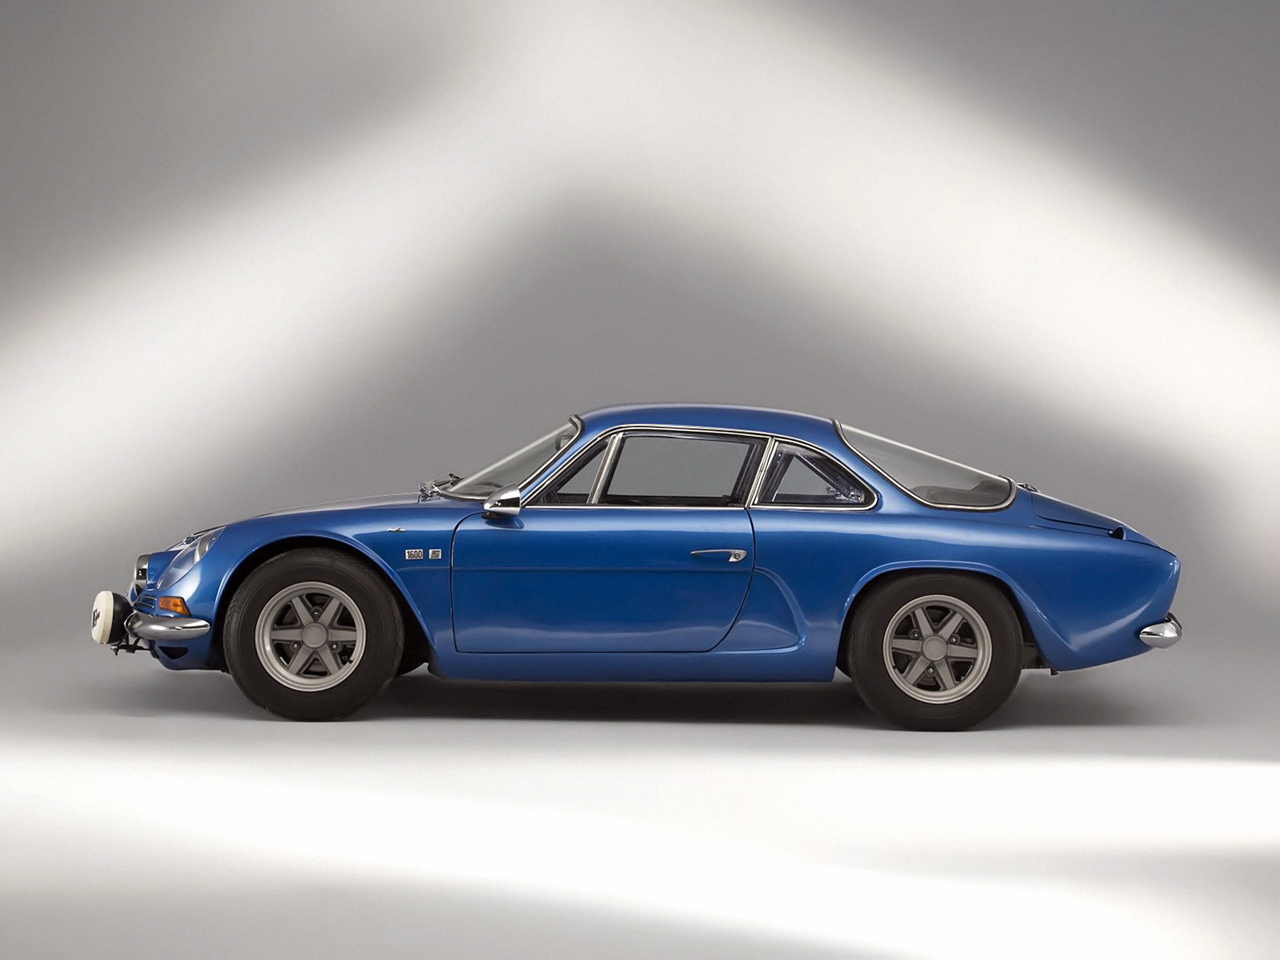 Alpine A110 1600s - profil / side-face